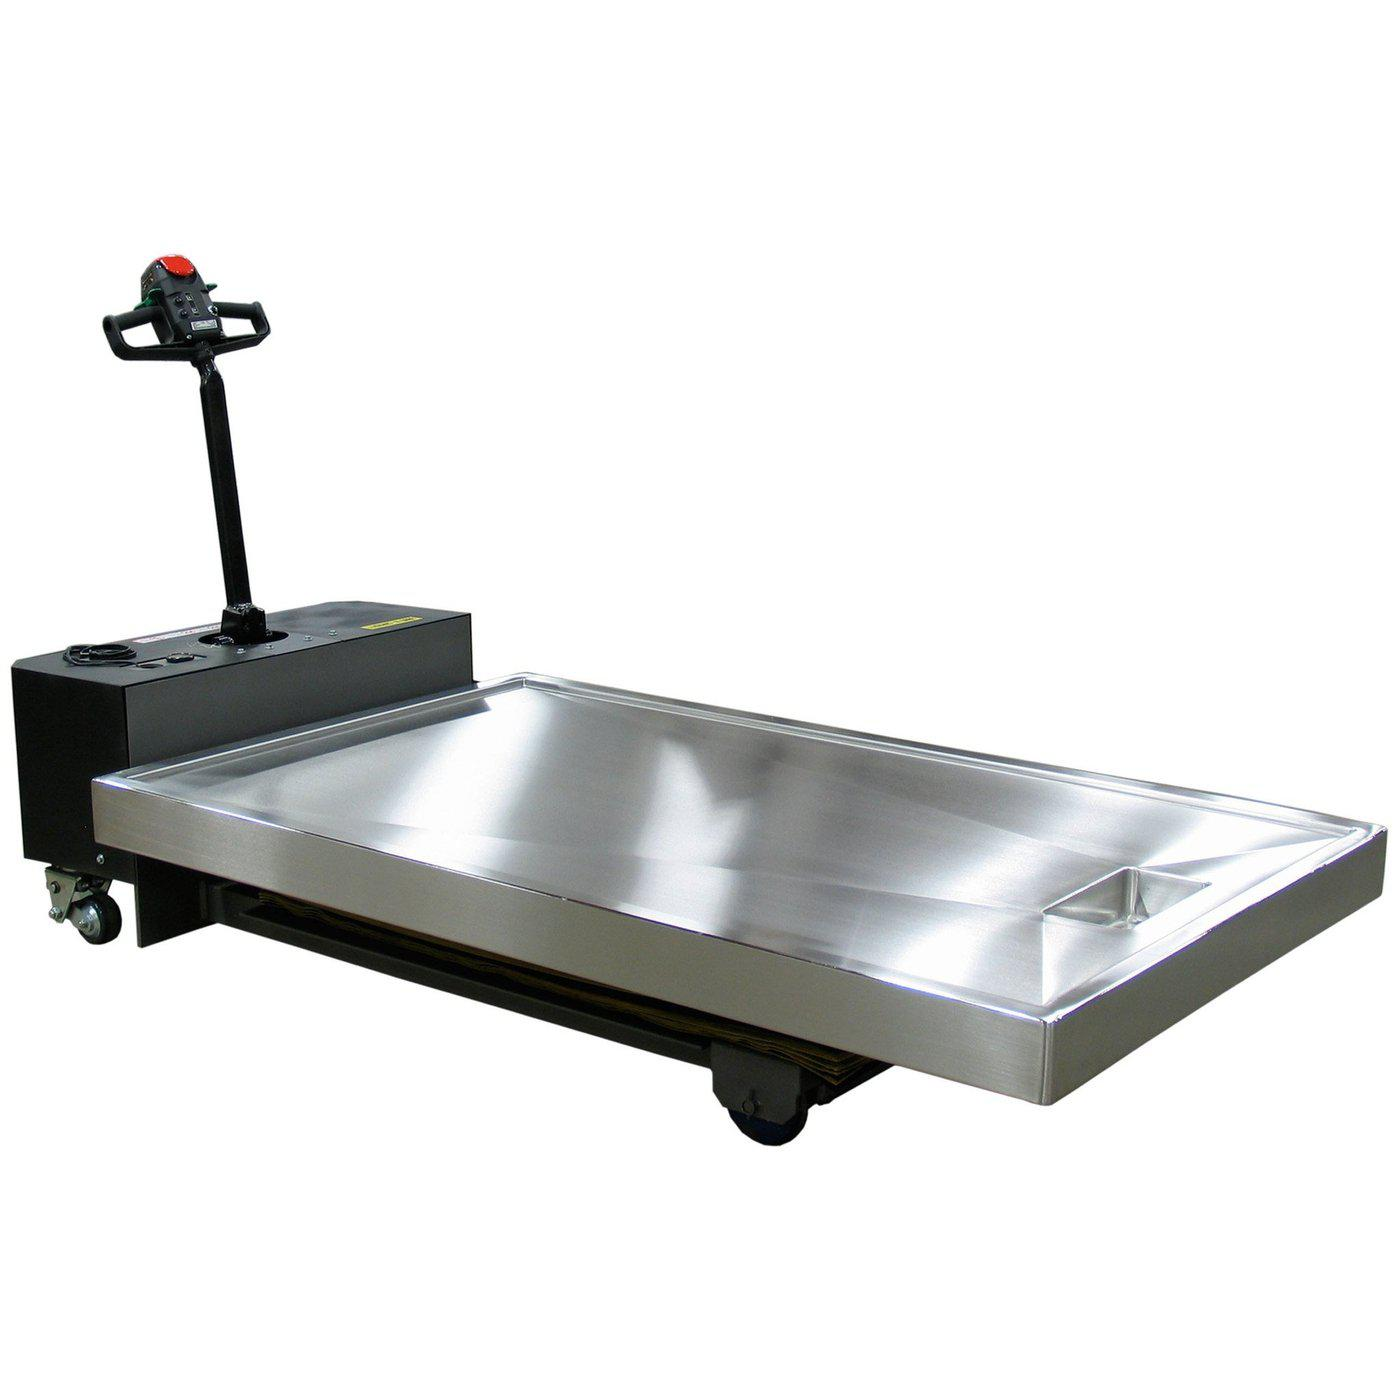 Self-Propelled Hydraulic Necropsy Table-Necropsy Dissection Tables-Mortech Manufacturing Company Inc. Quality Stainless Steel Autopsy, Morgue, Funeral Home, Necropsy, Veterinary / Anatomy, Dissection Equipment and Accessories